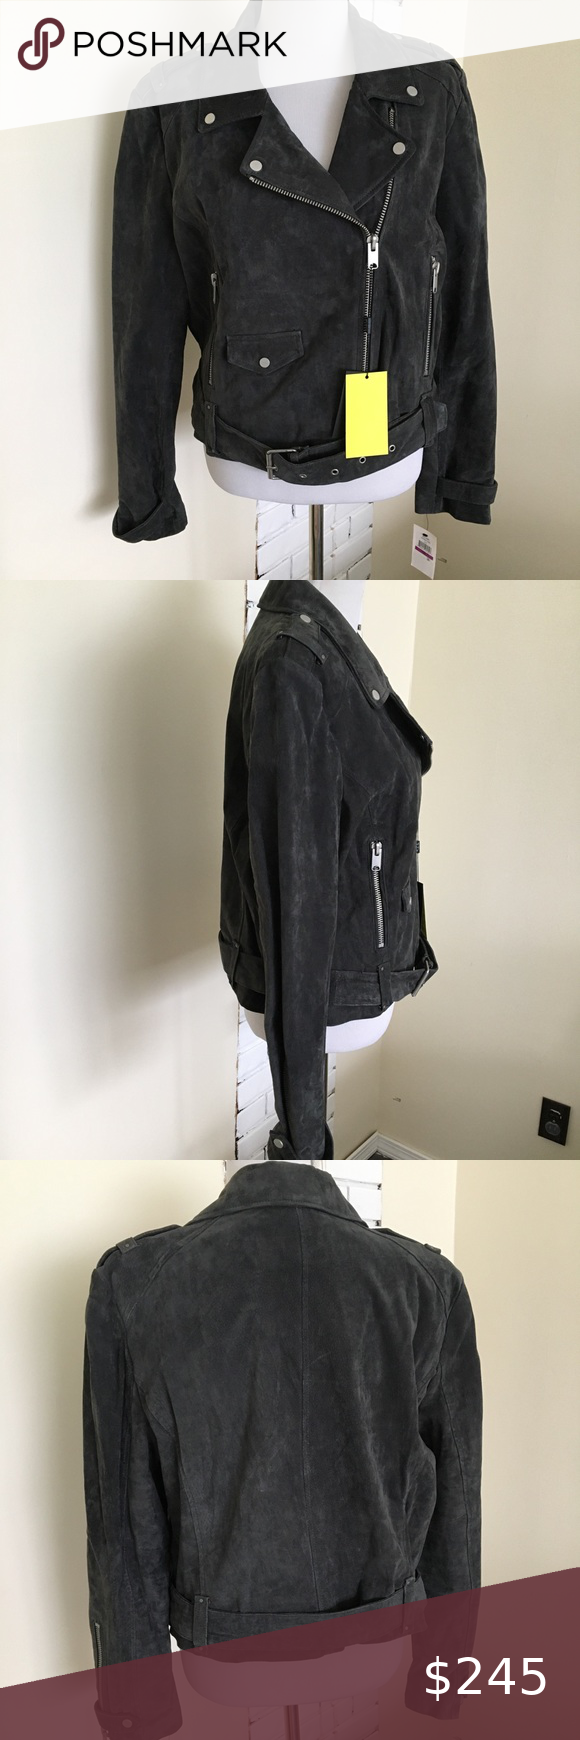 Nwt Marc New York Suede Leather Moto Jacket Xxl New Marc New York Andrew Marc Sabrina Suede Leather Moto Jacket Womens Black Leather Jacket Leather Coat Womens [ 1740 x 580 Pixel ]